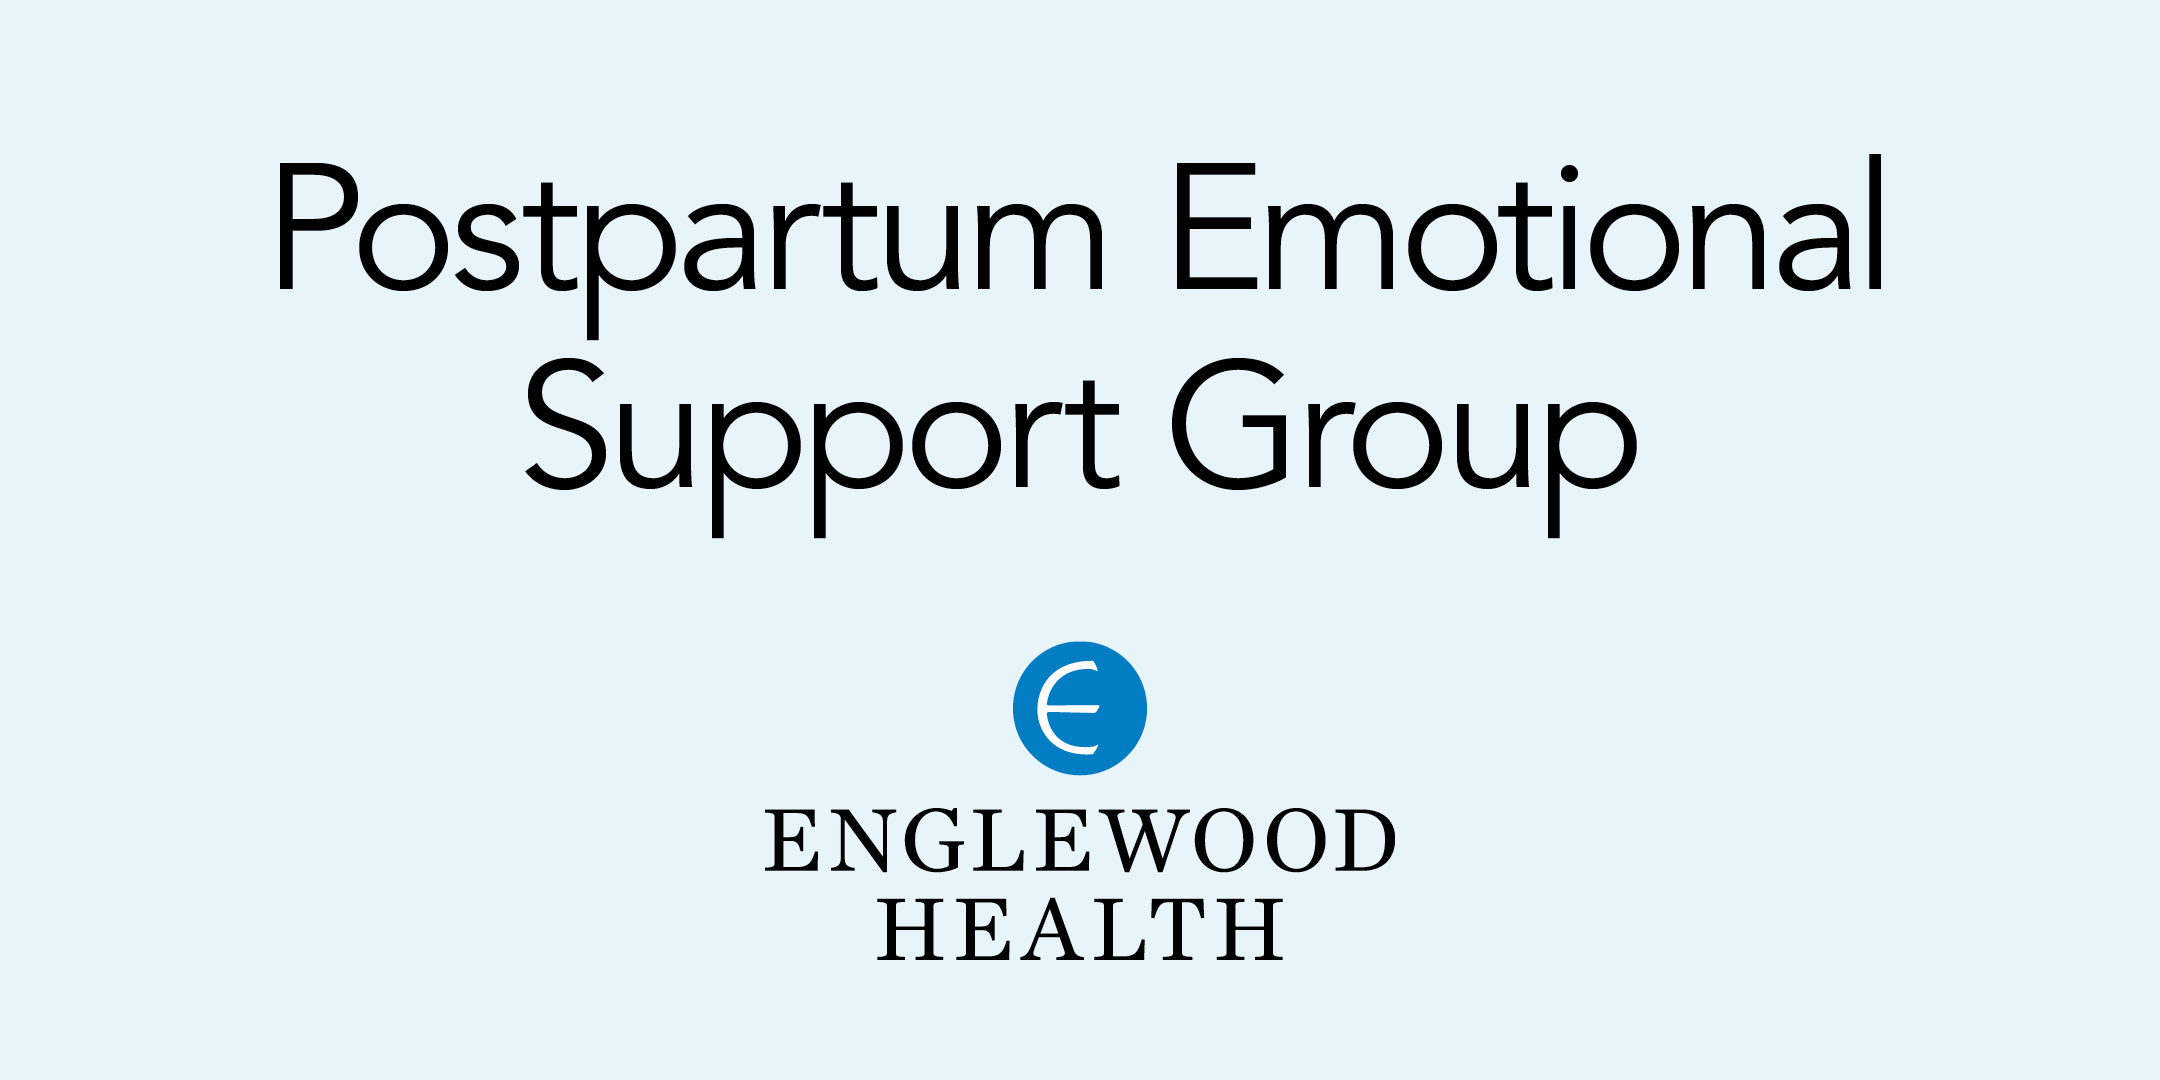 More info: Postpartum Emotional Support Group